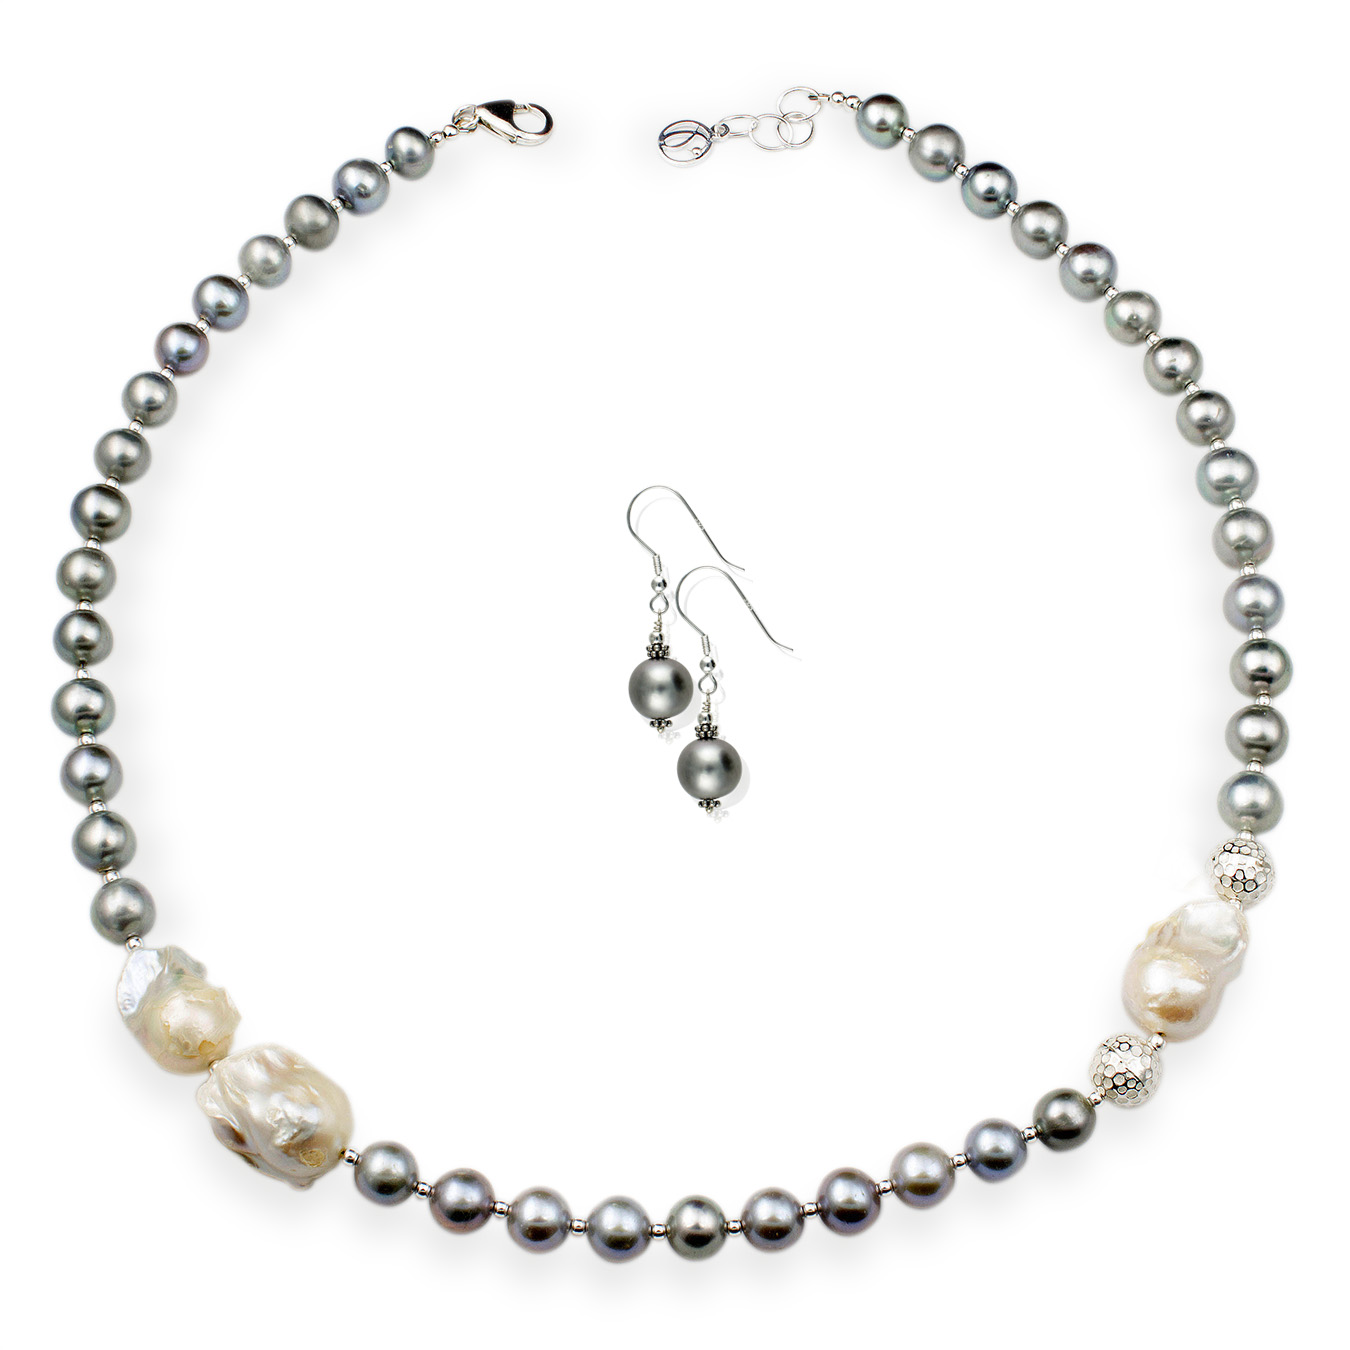 Customized necklace with choice of cultured round and nucleated pearl